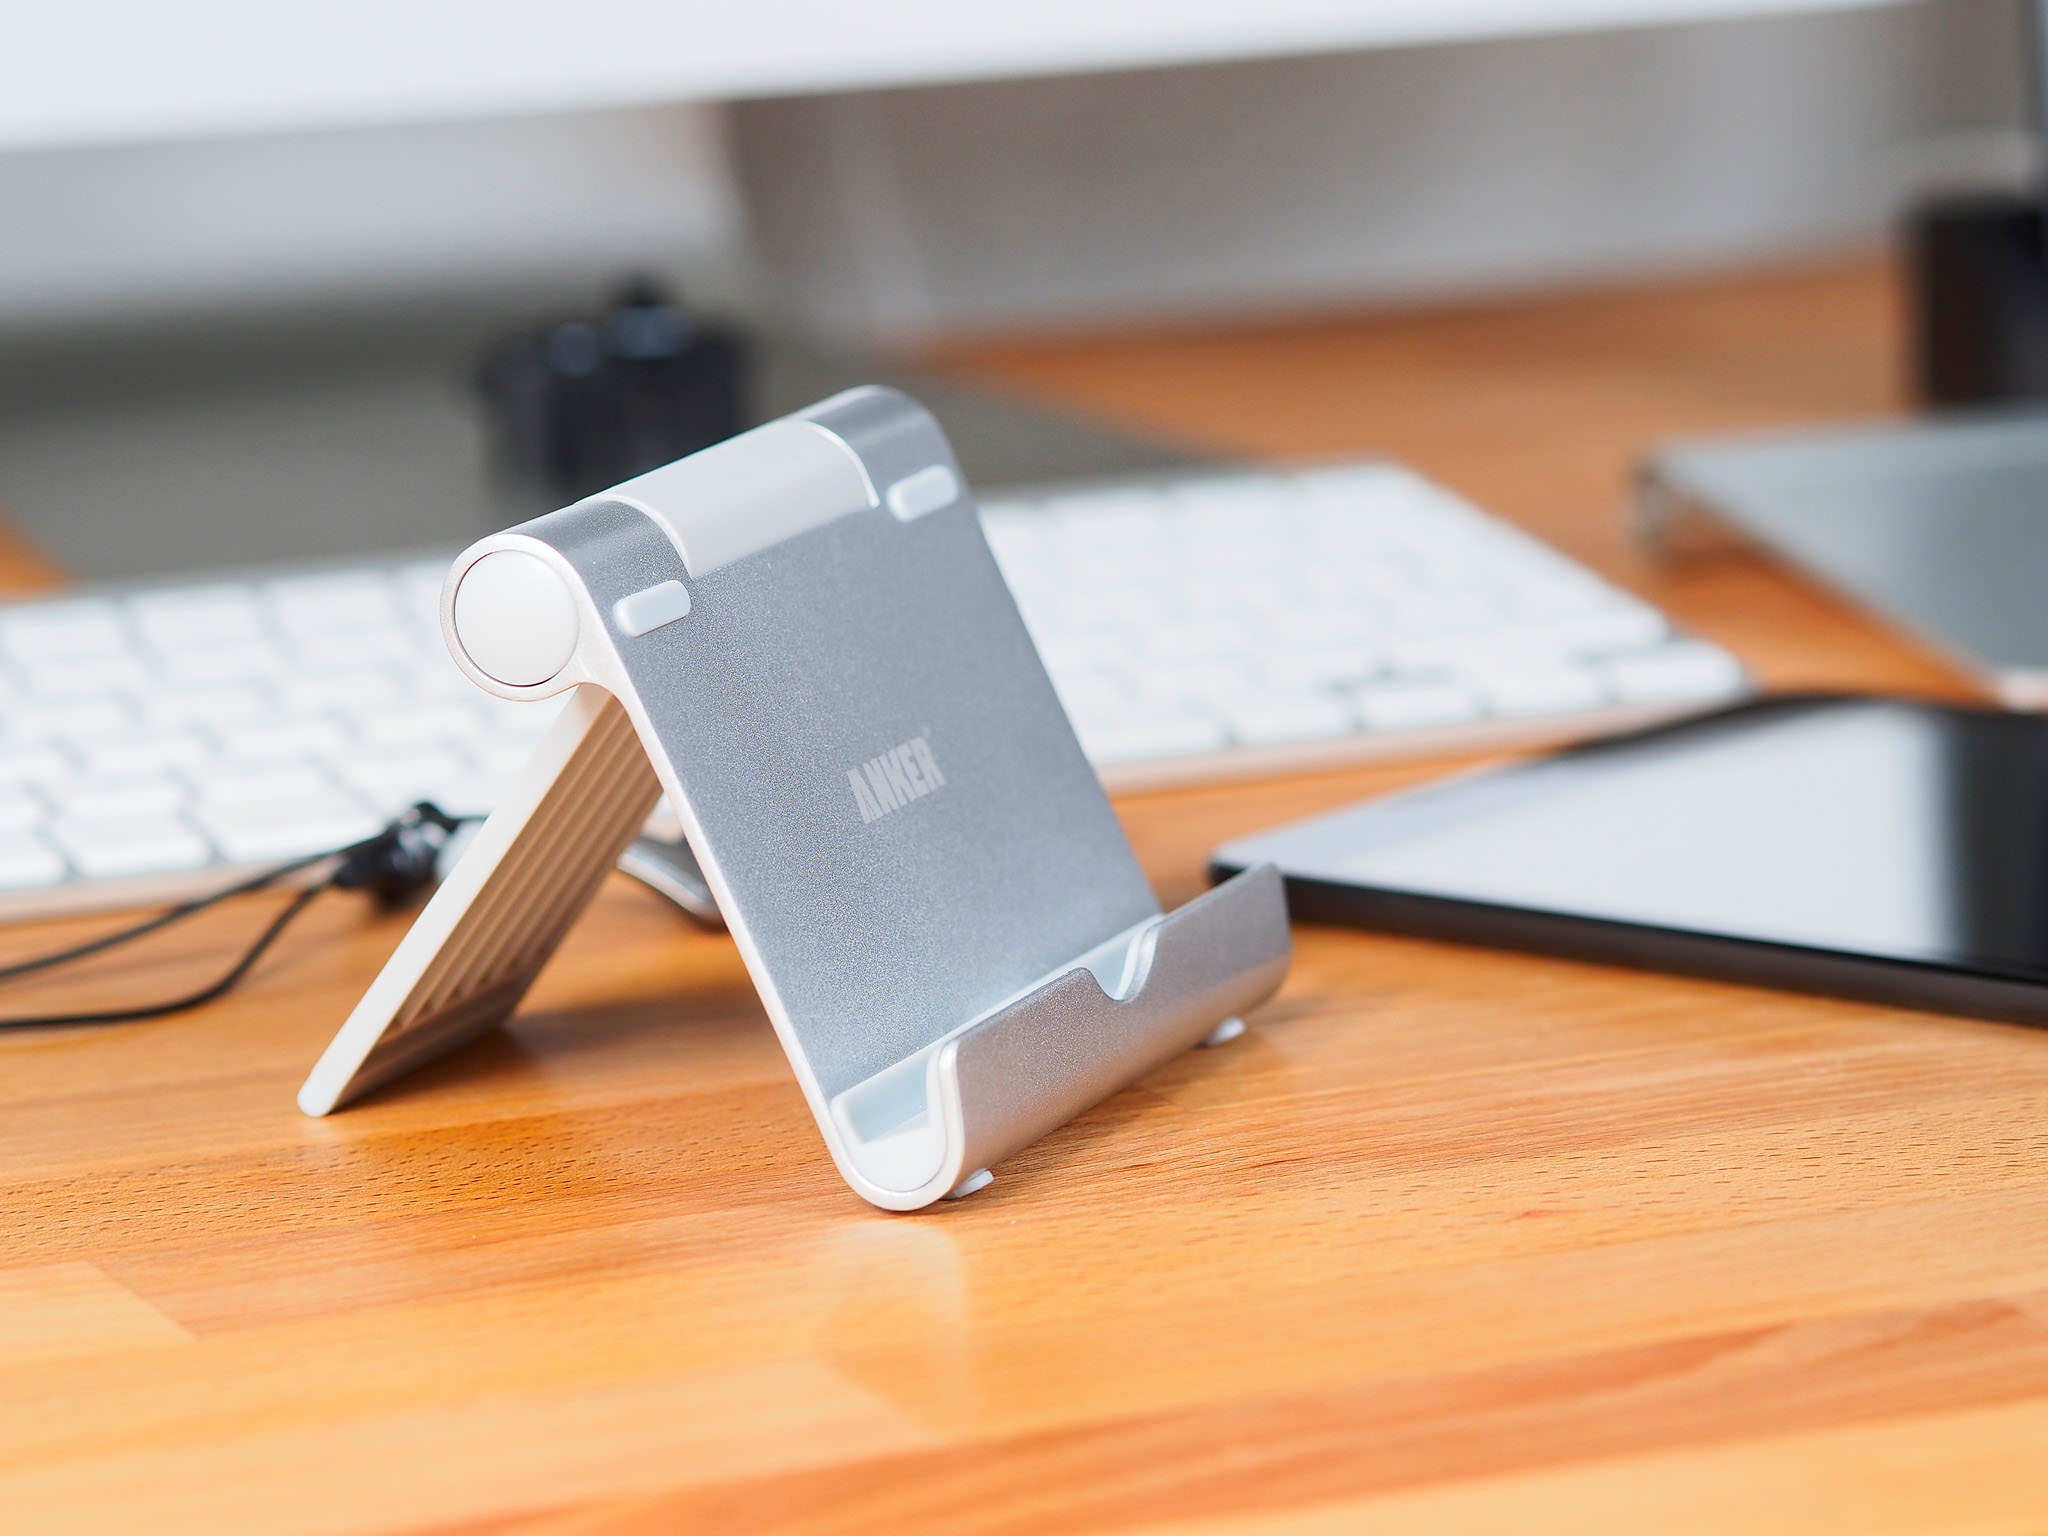 Anker Tablet Stand 2